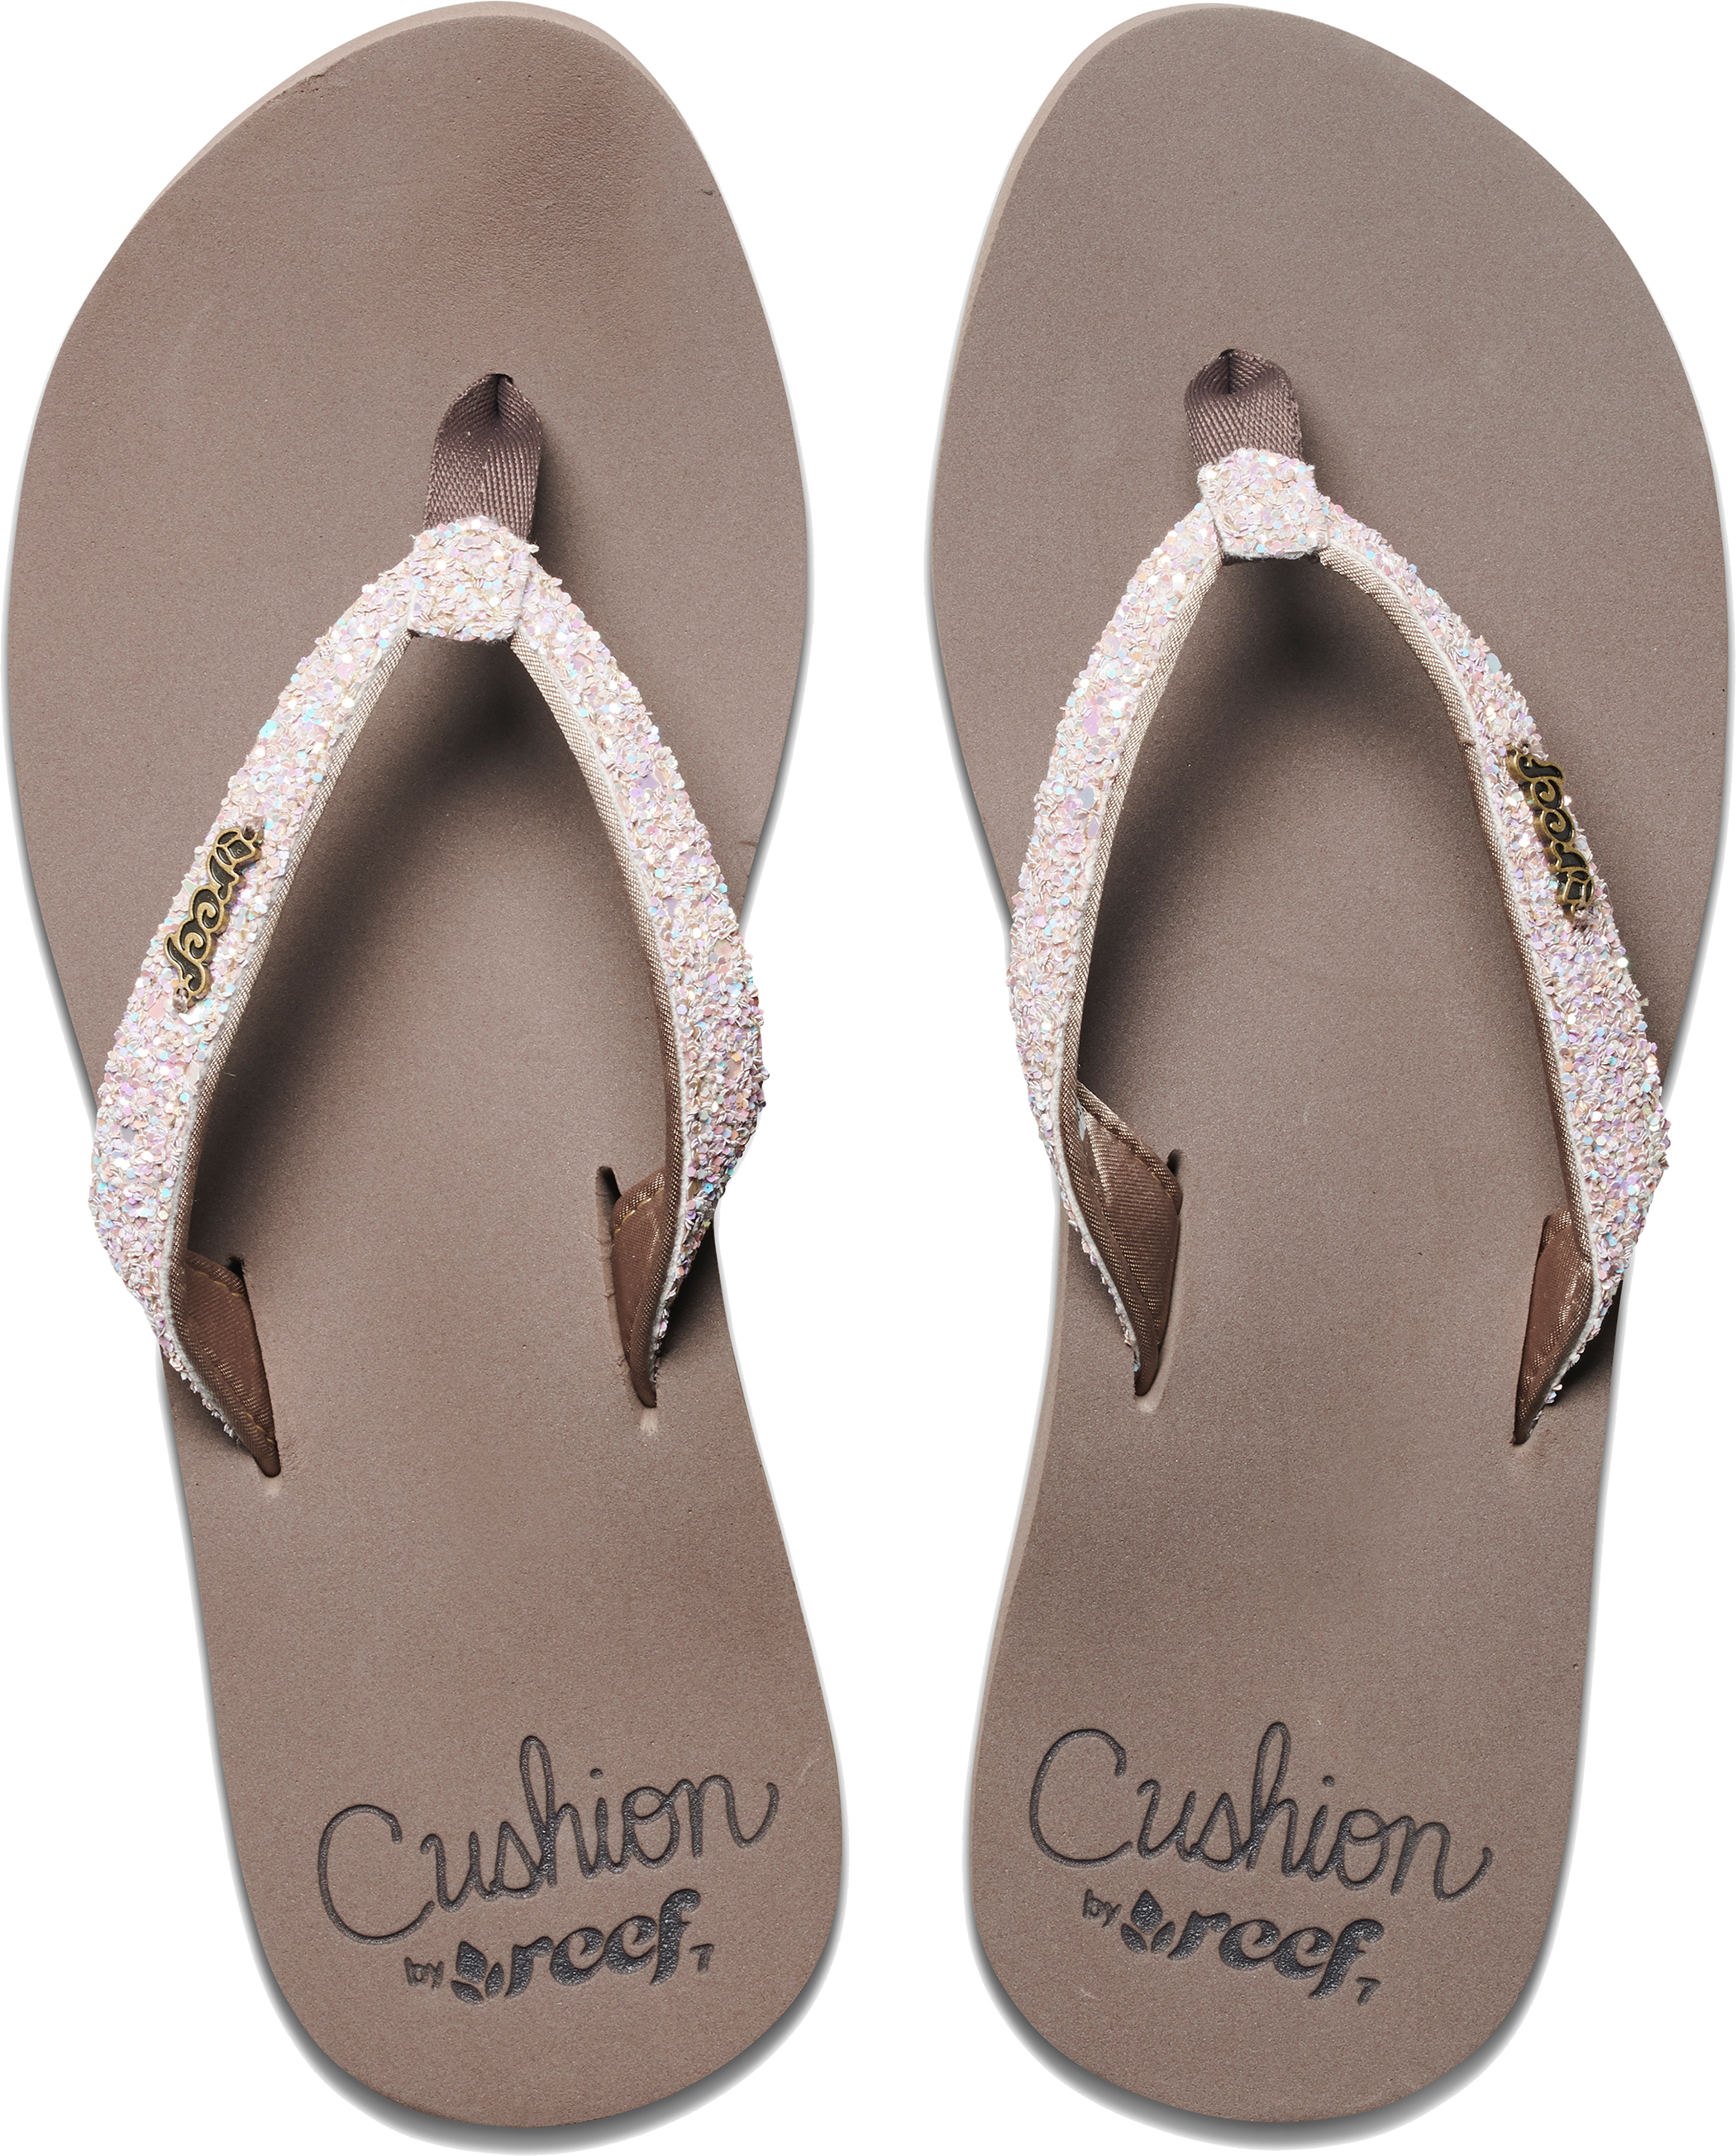 f8ac7ced588a Reef Star Cushion Women s Flip Flops With a Sparkly Satin Lined ...